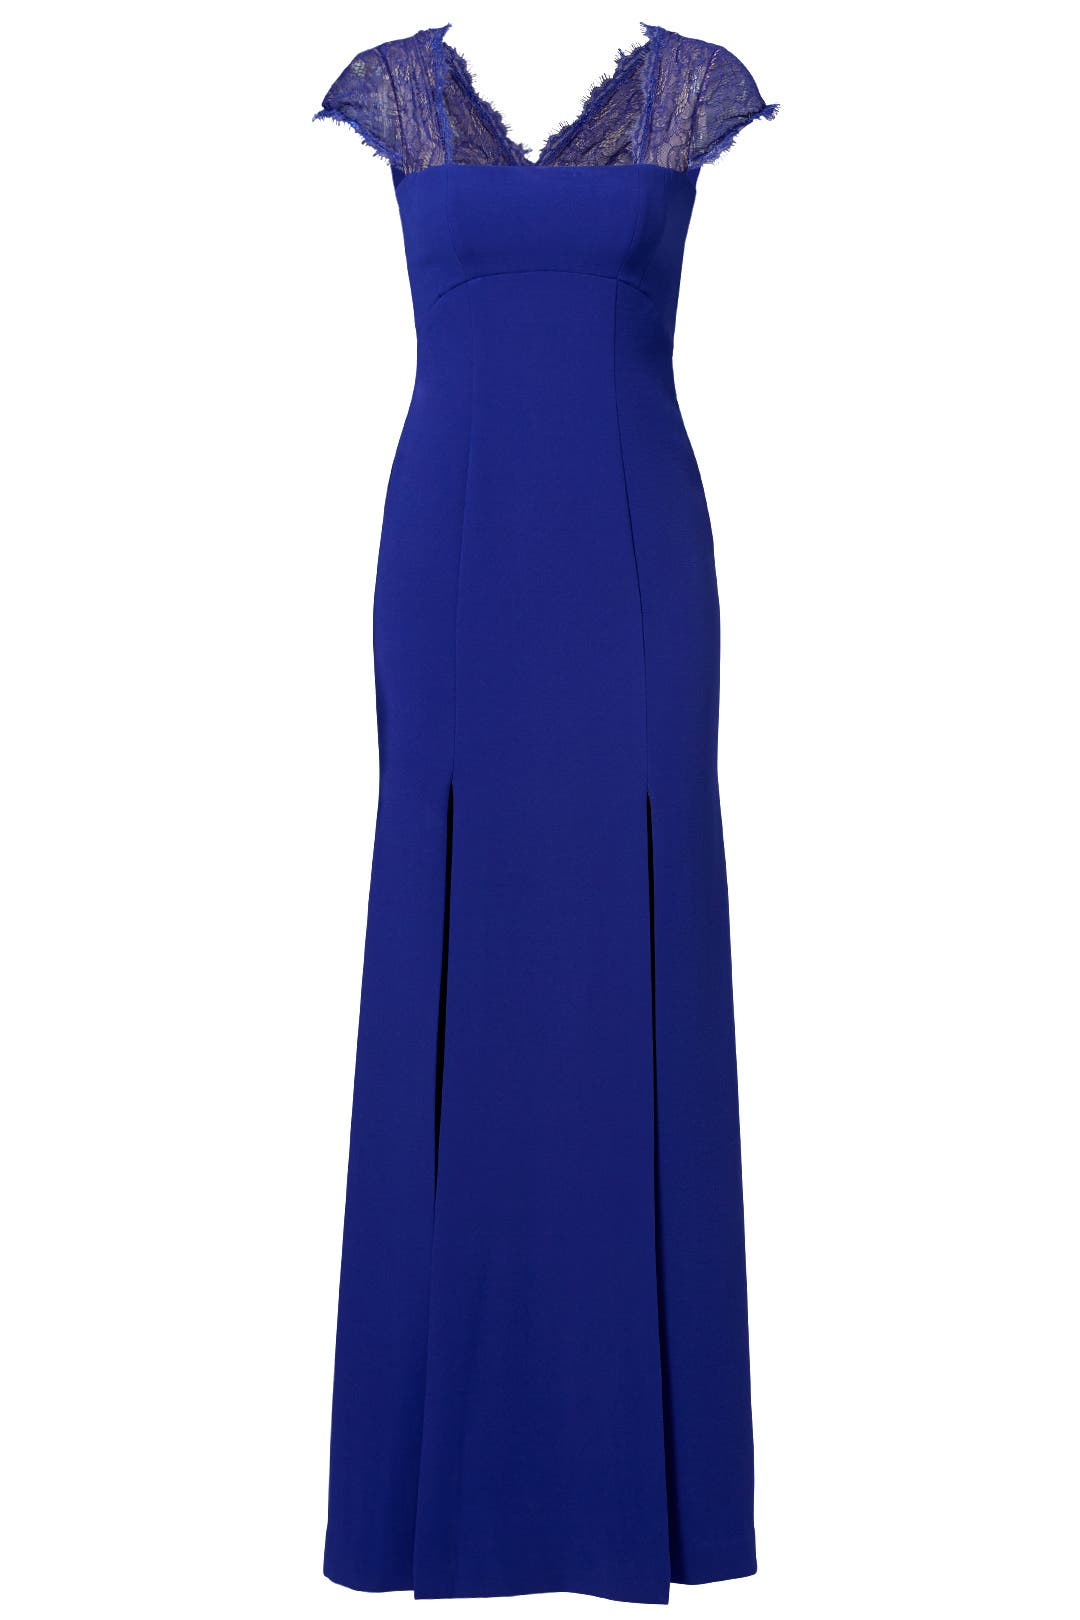 Inevitable Beauty Gown by BCBGMAXAZRIA for $60 - $80 | Rent the Runway